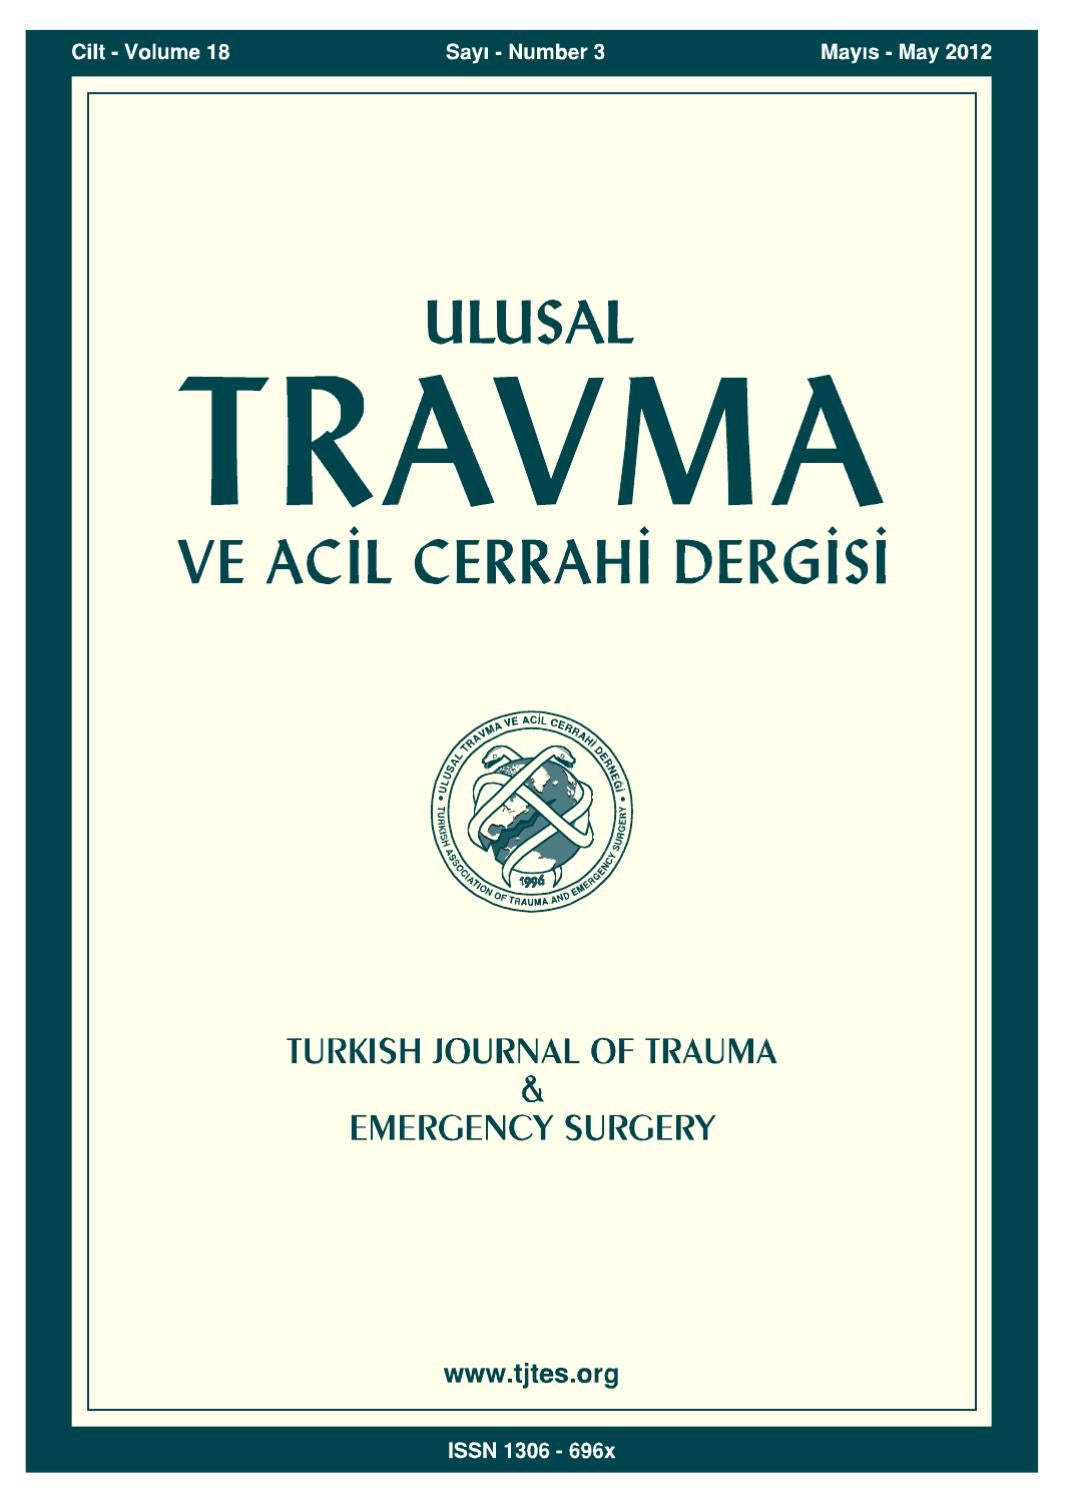 Travma 2012 3 By Karepublishing Issuu